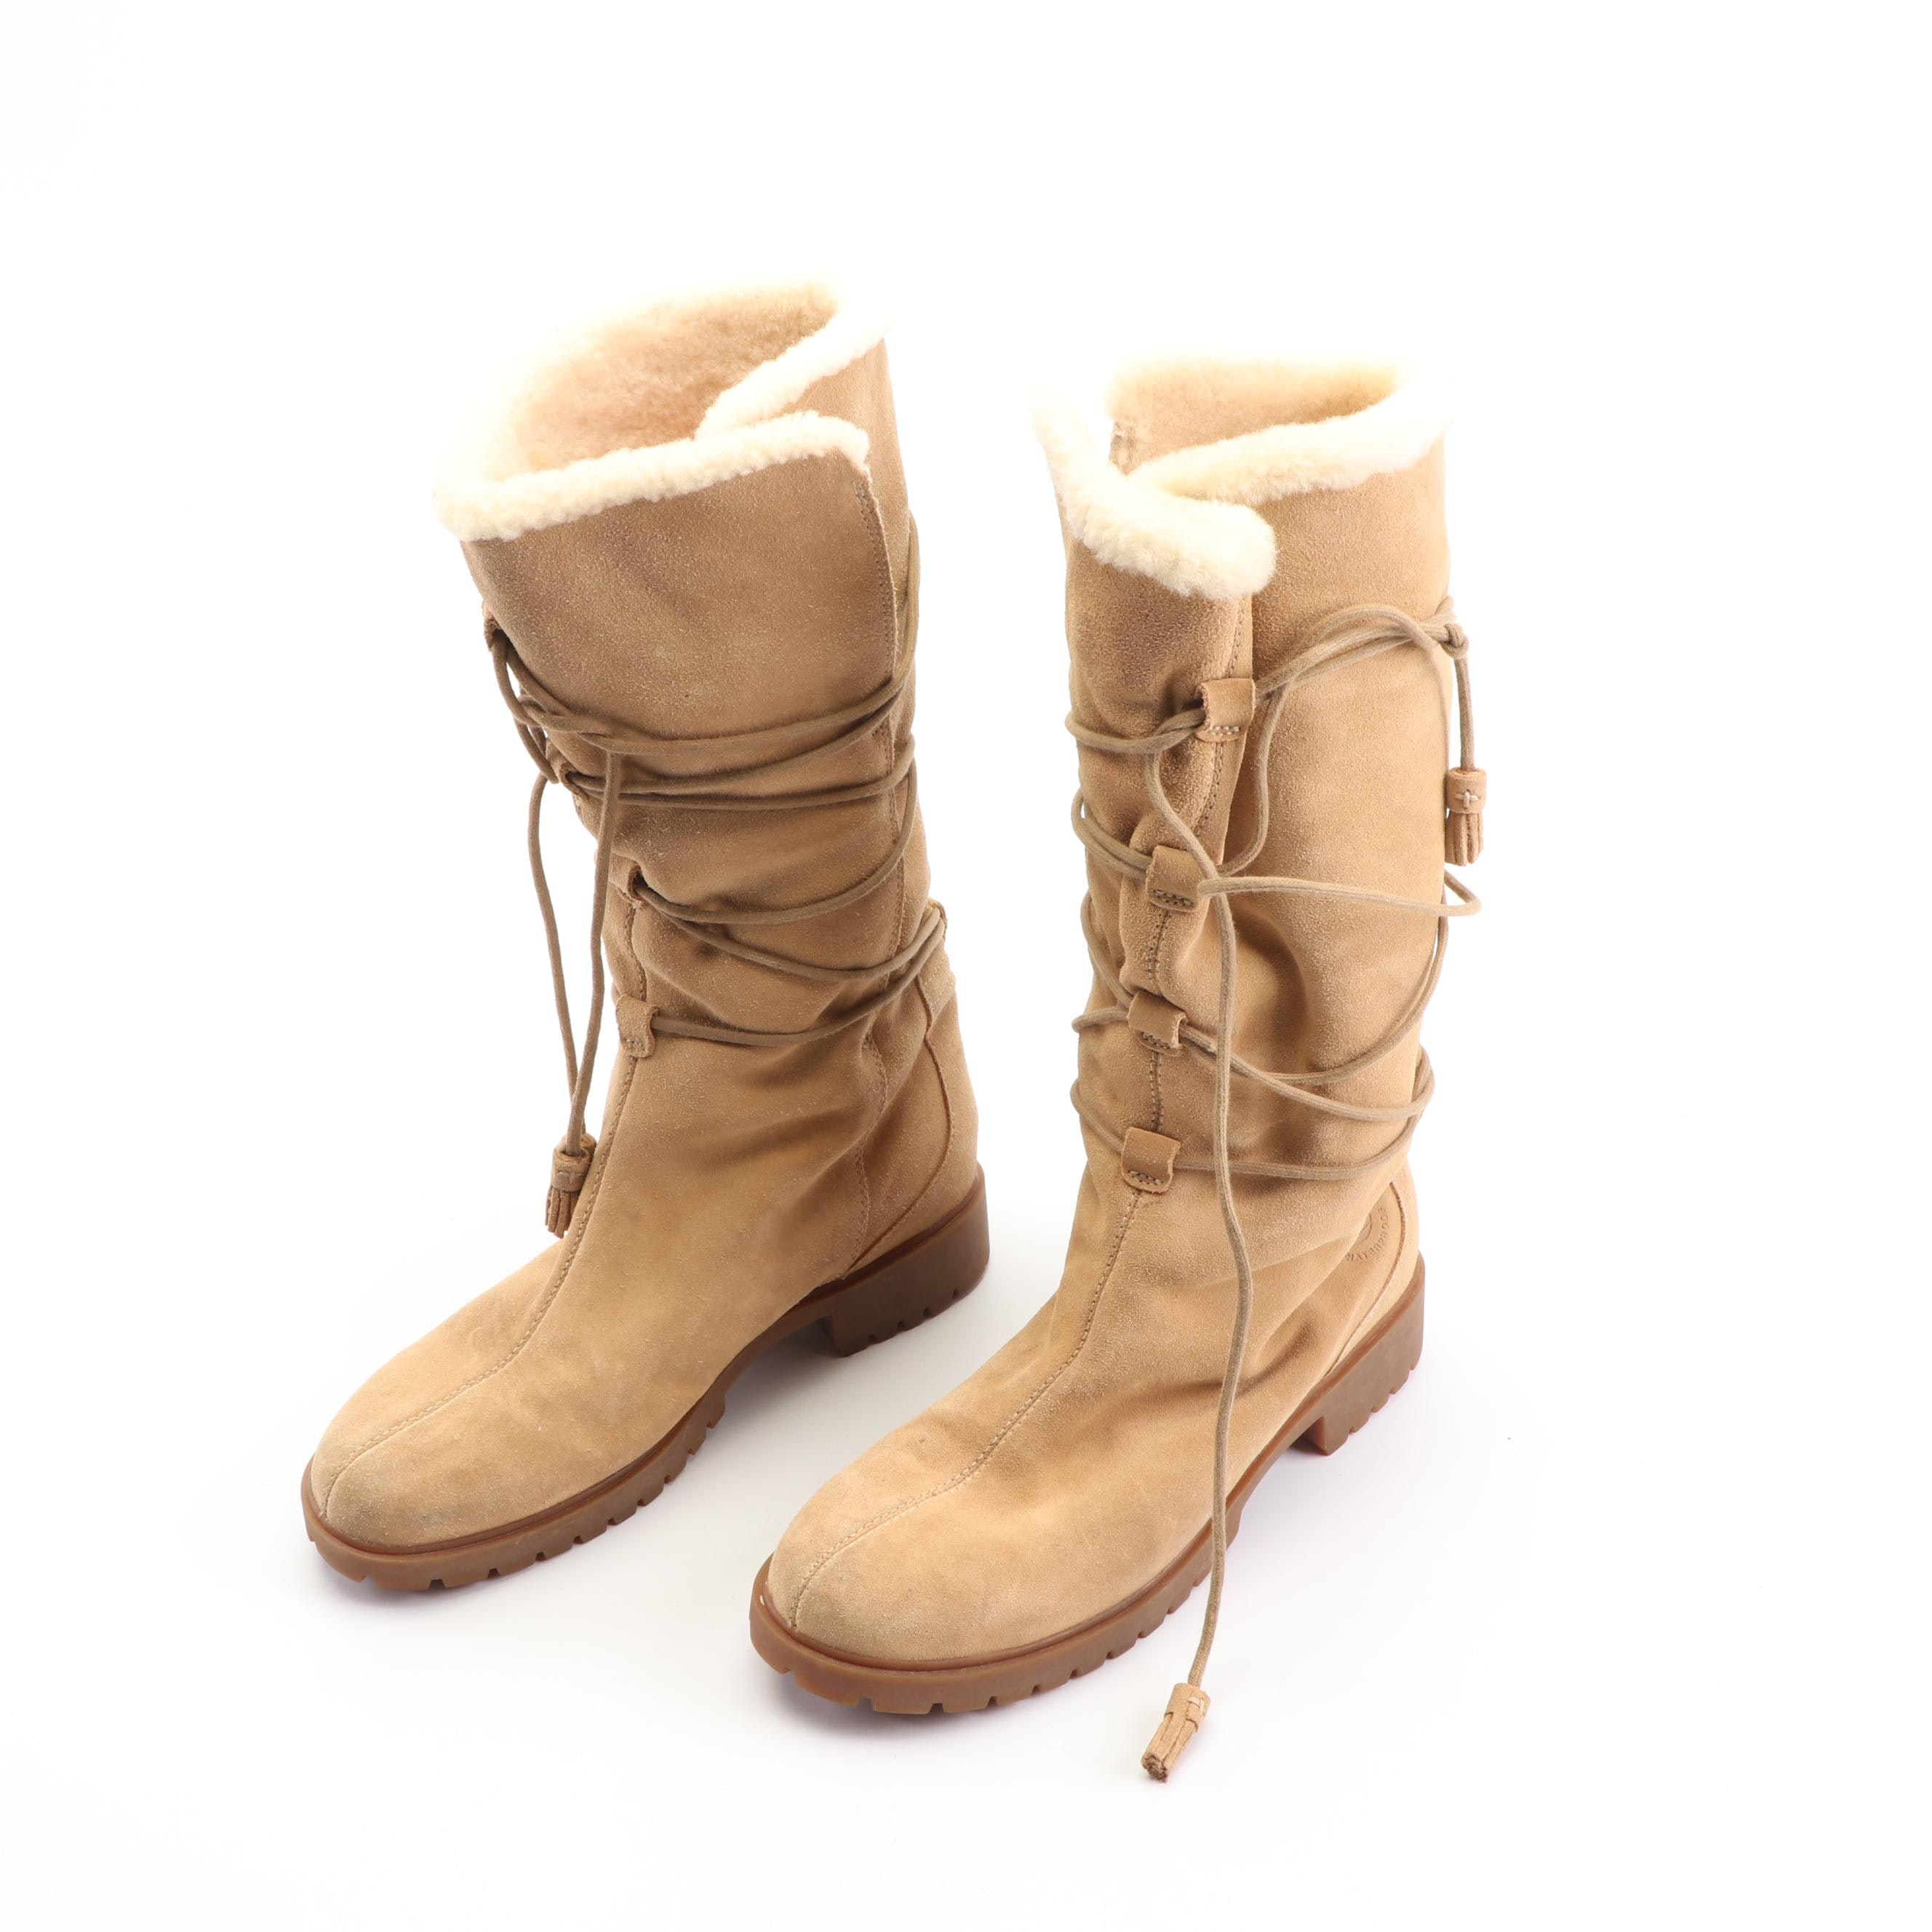 Women's Timberland Tan Suede Tall Lace-Up Winter Boots